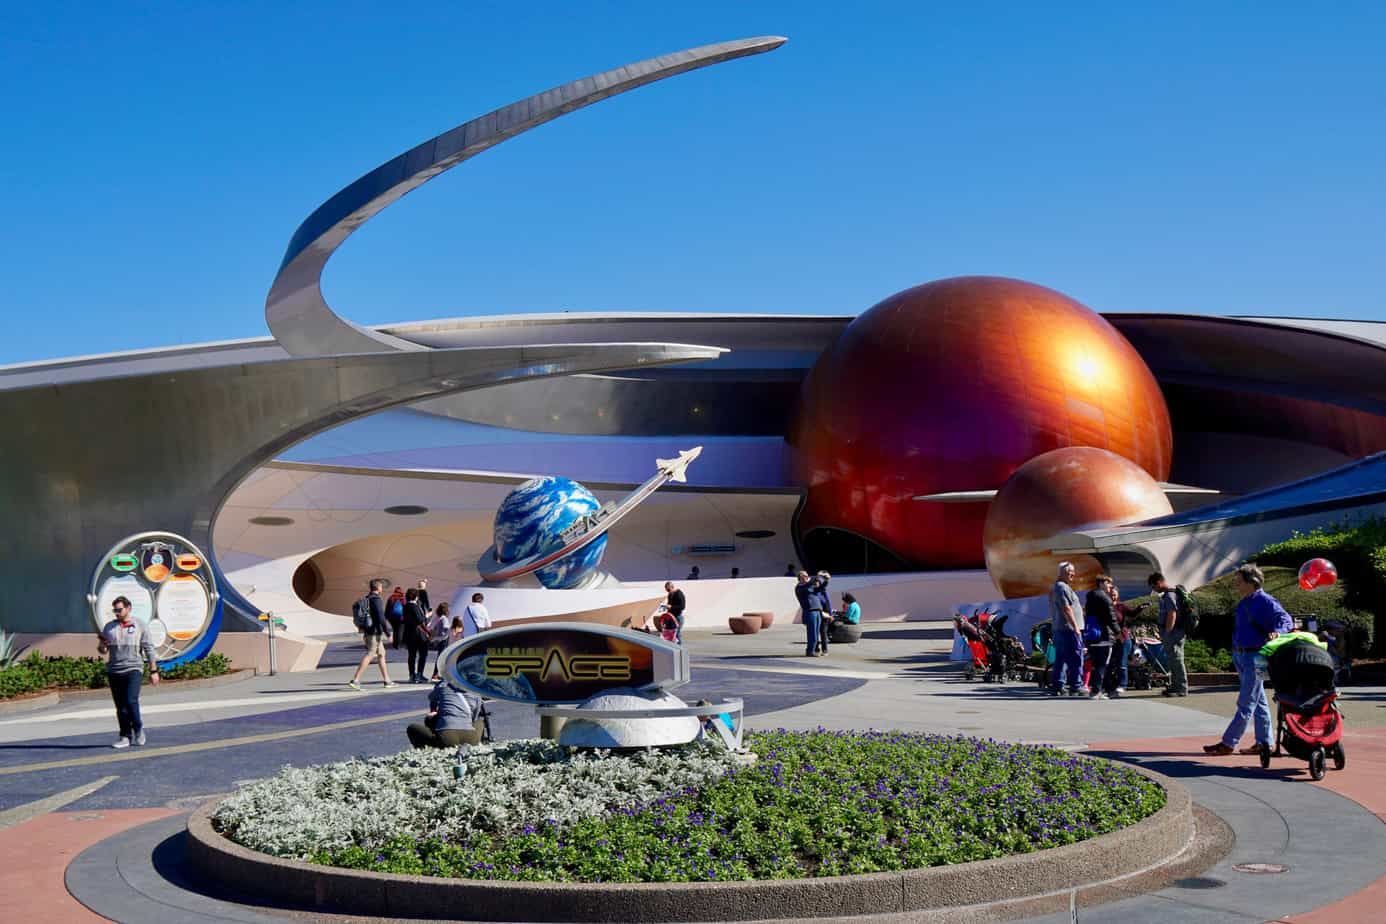 Disney's Mission Space